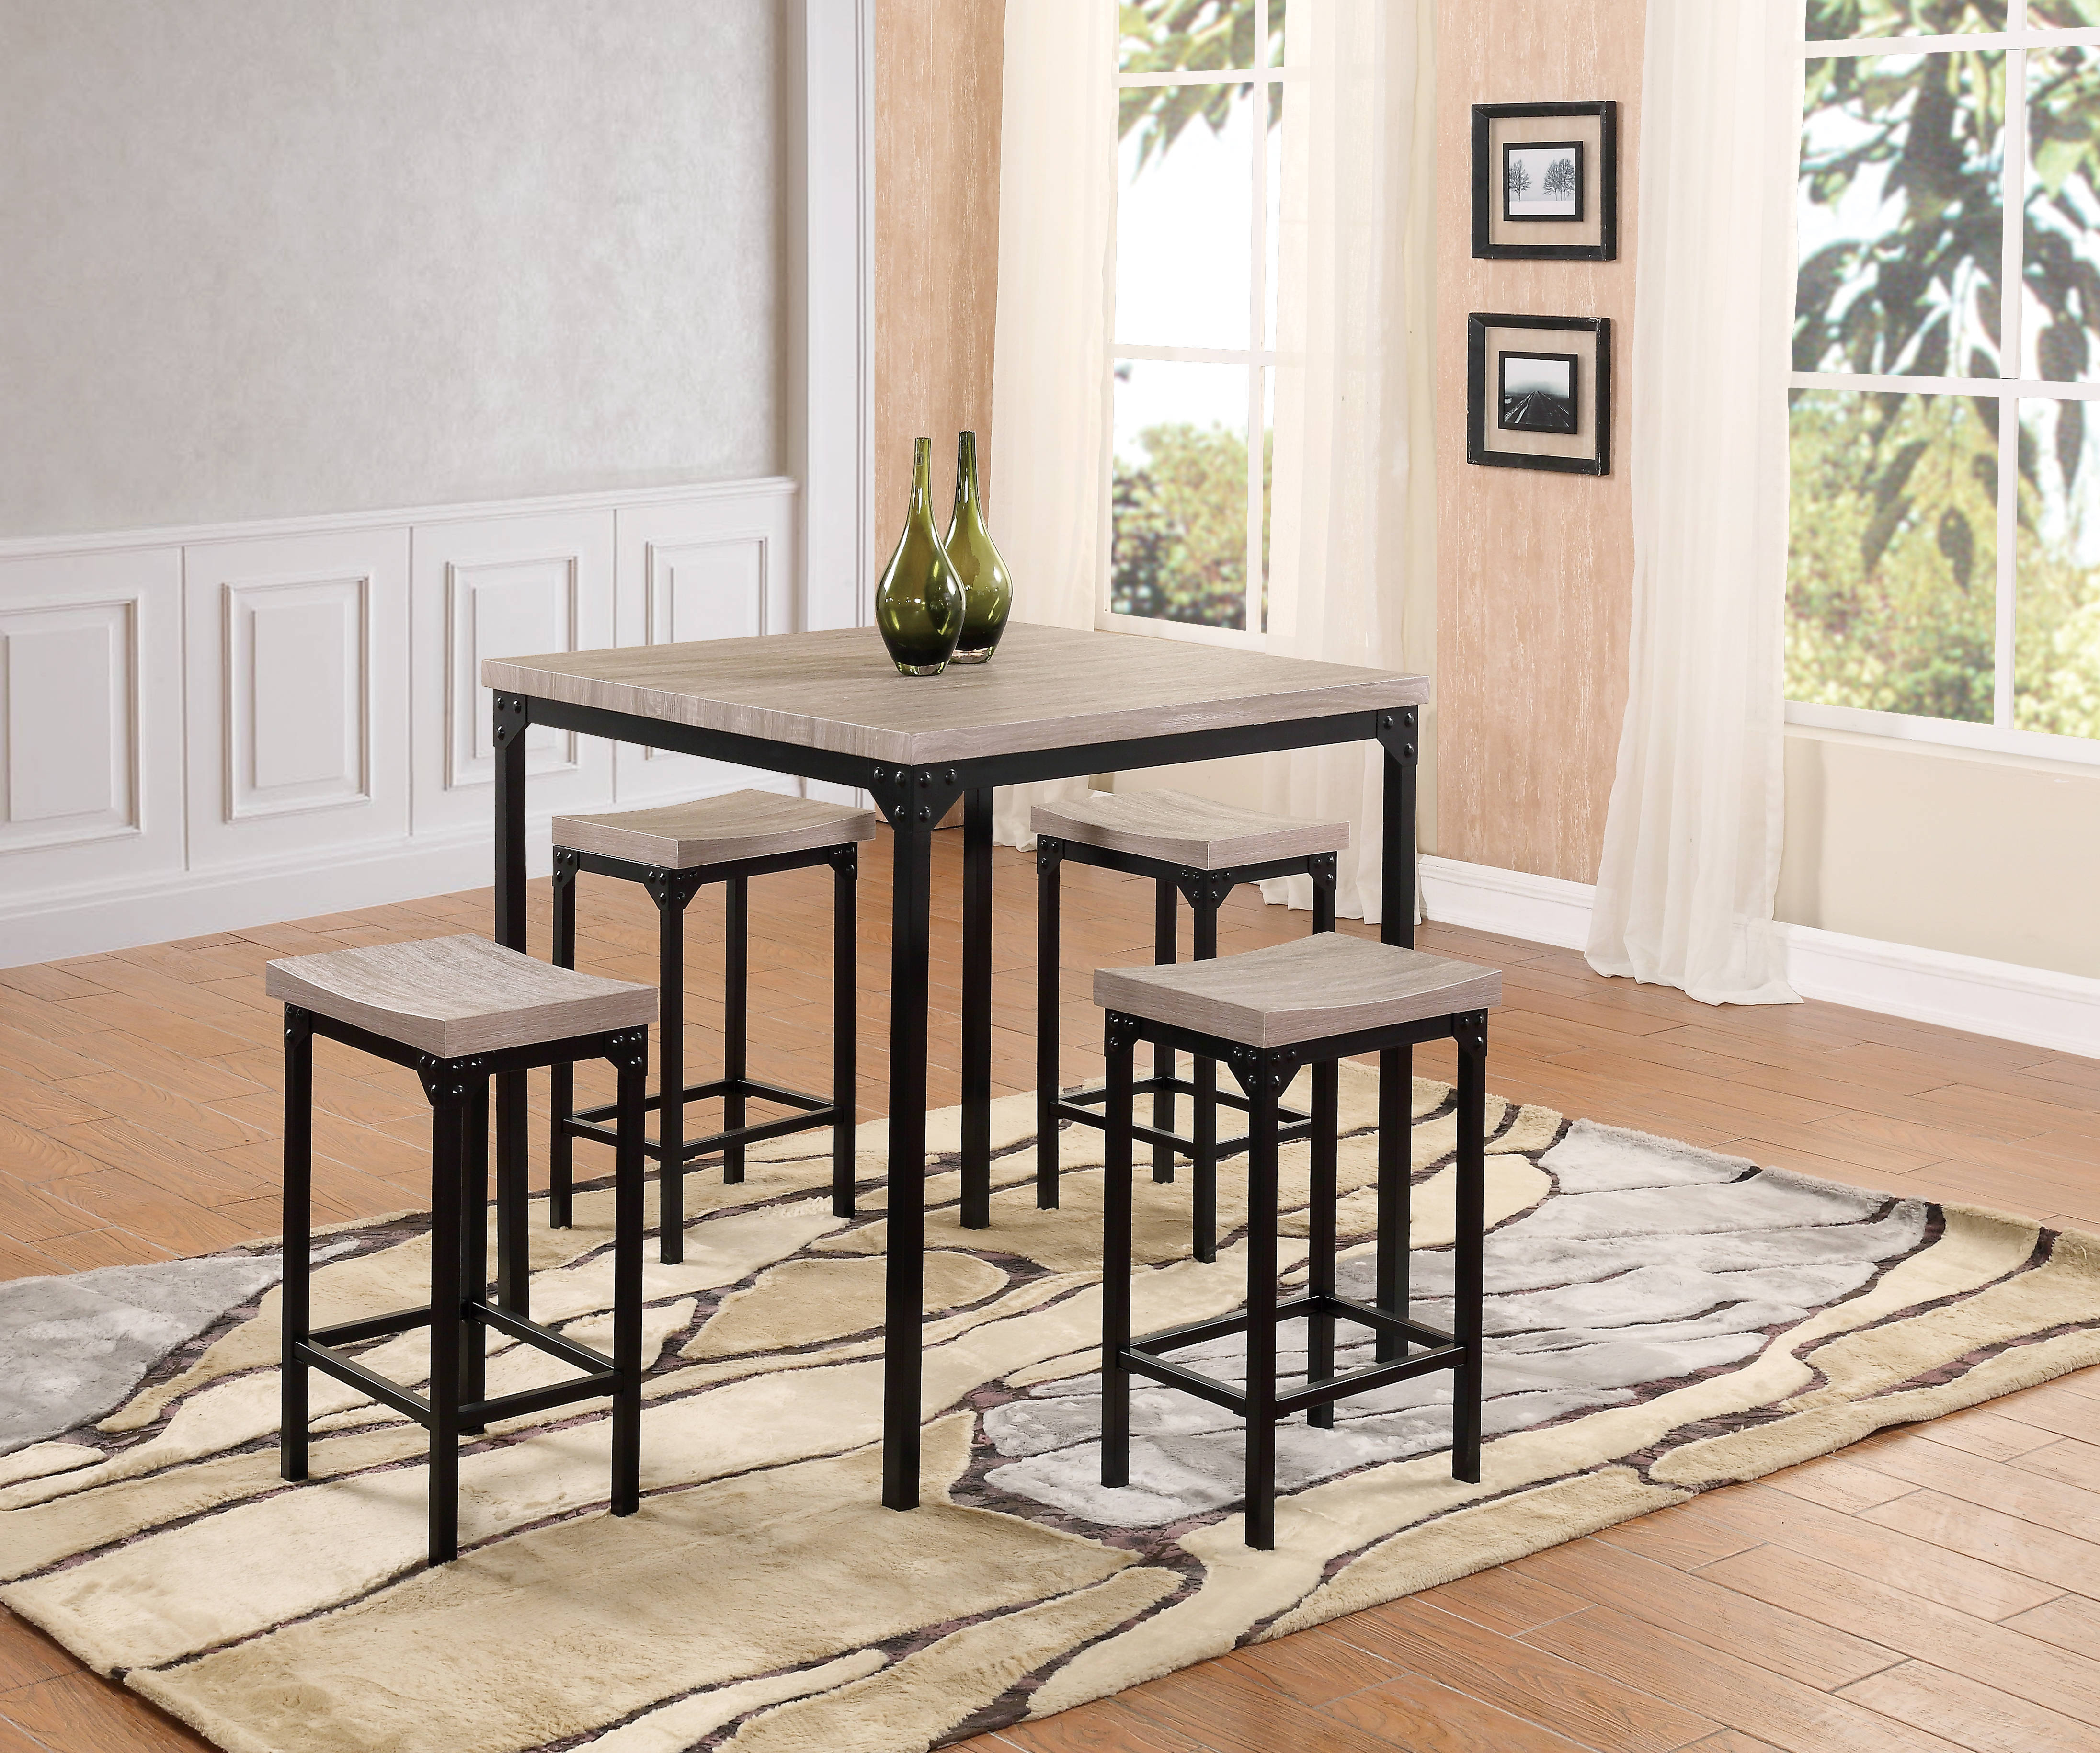 Home Design Ideas Intended For Middleport 5 Piece Dining Sets (View 22 of 25)